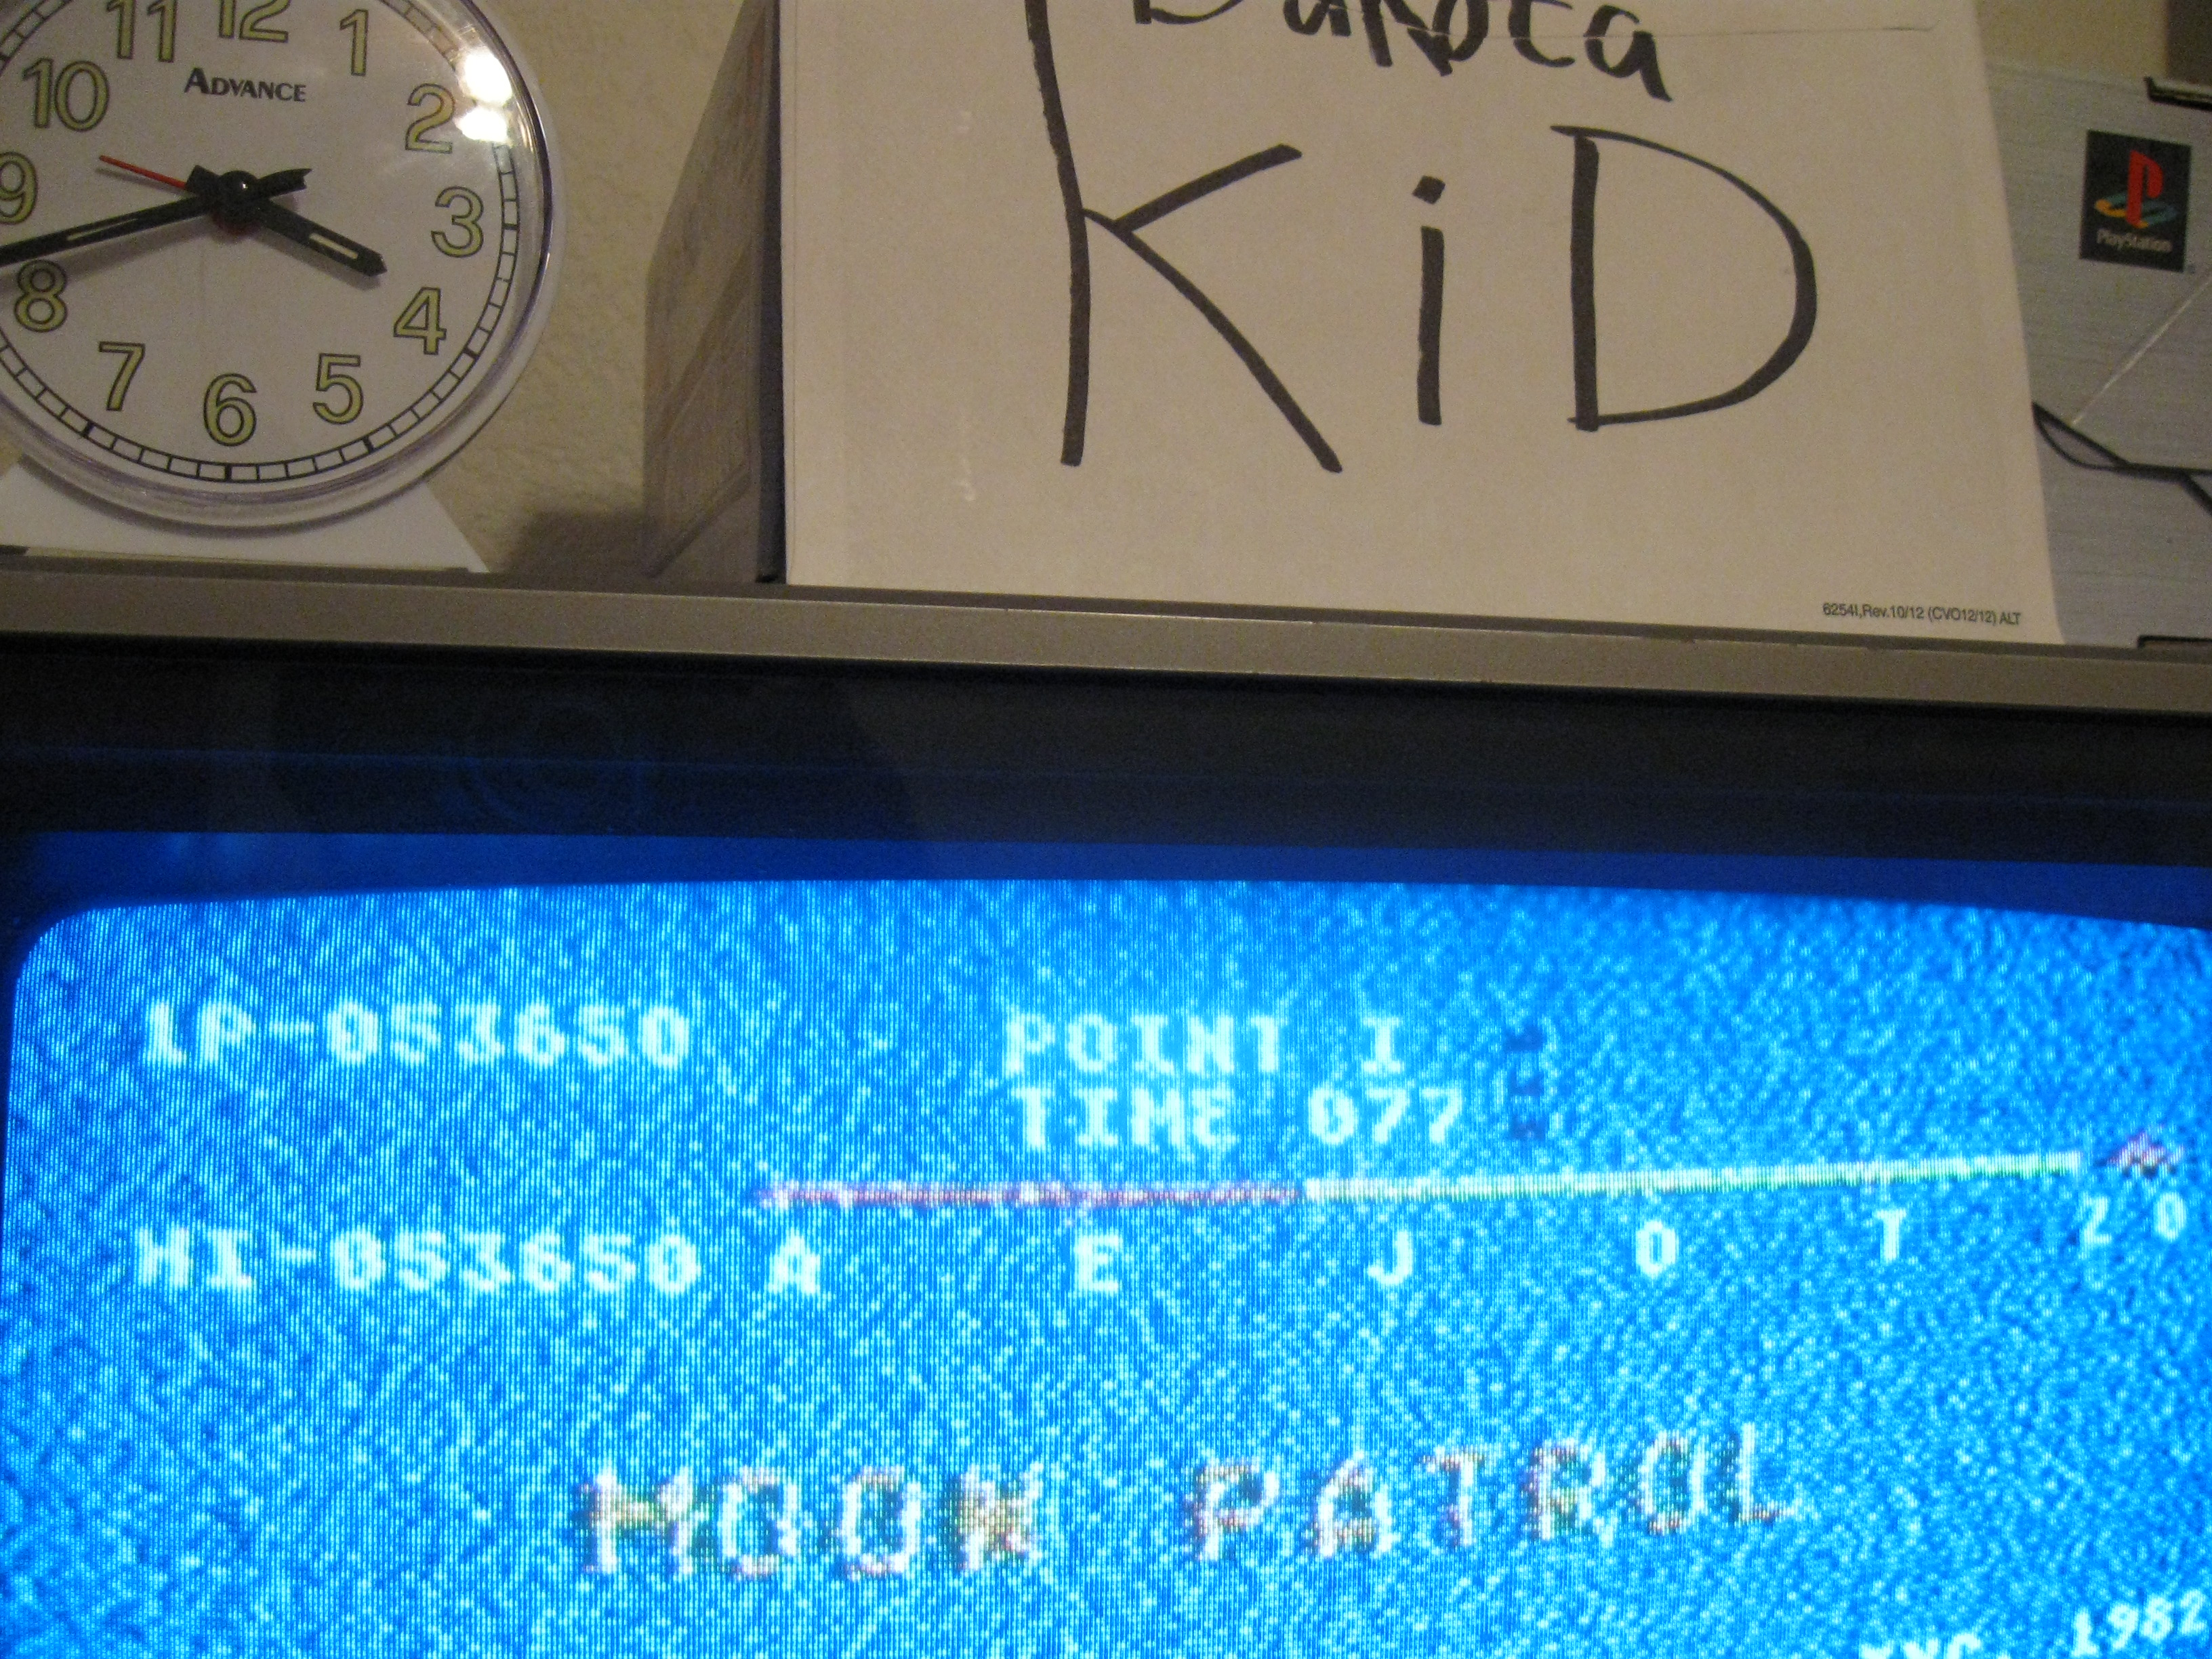 DakotaKid: Moon Patrol: Beginner (Atari 5200) 53,650 points on 2016-04-13 19:21:27